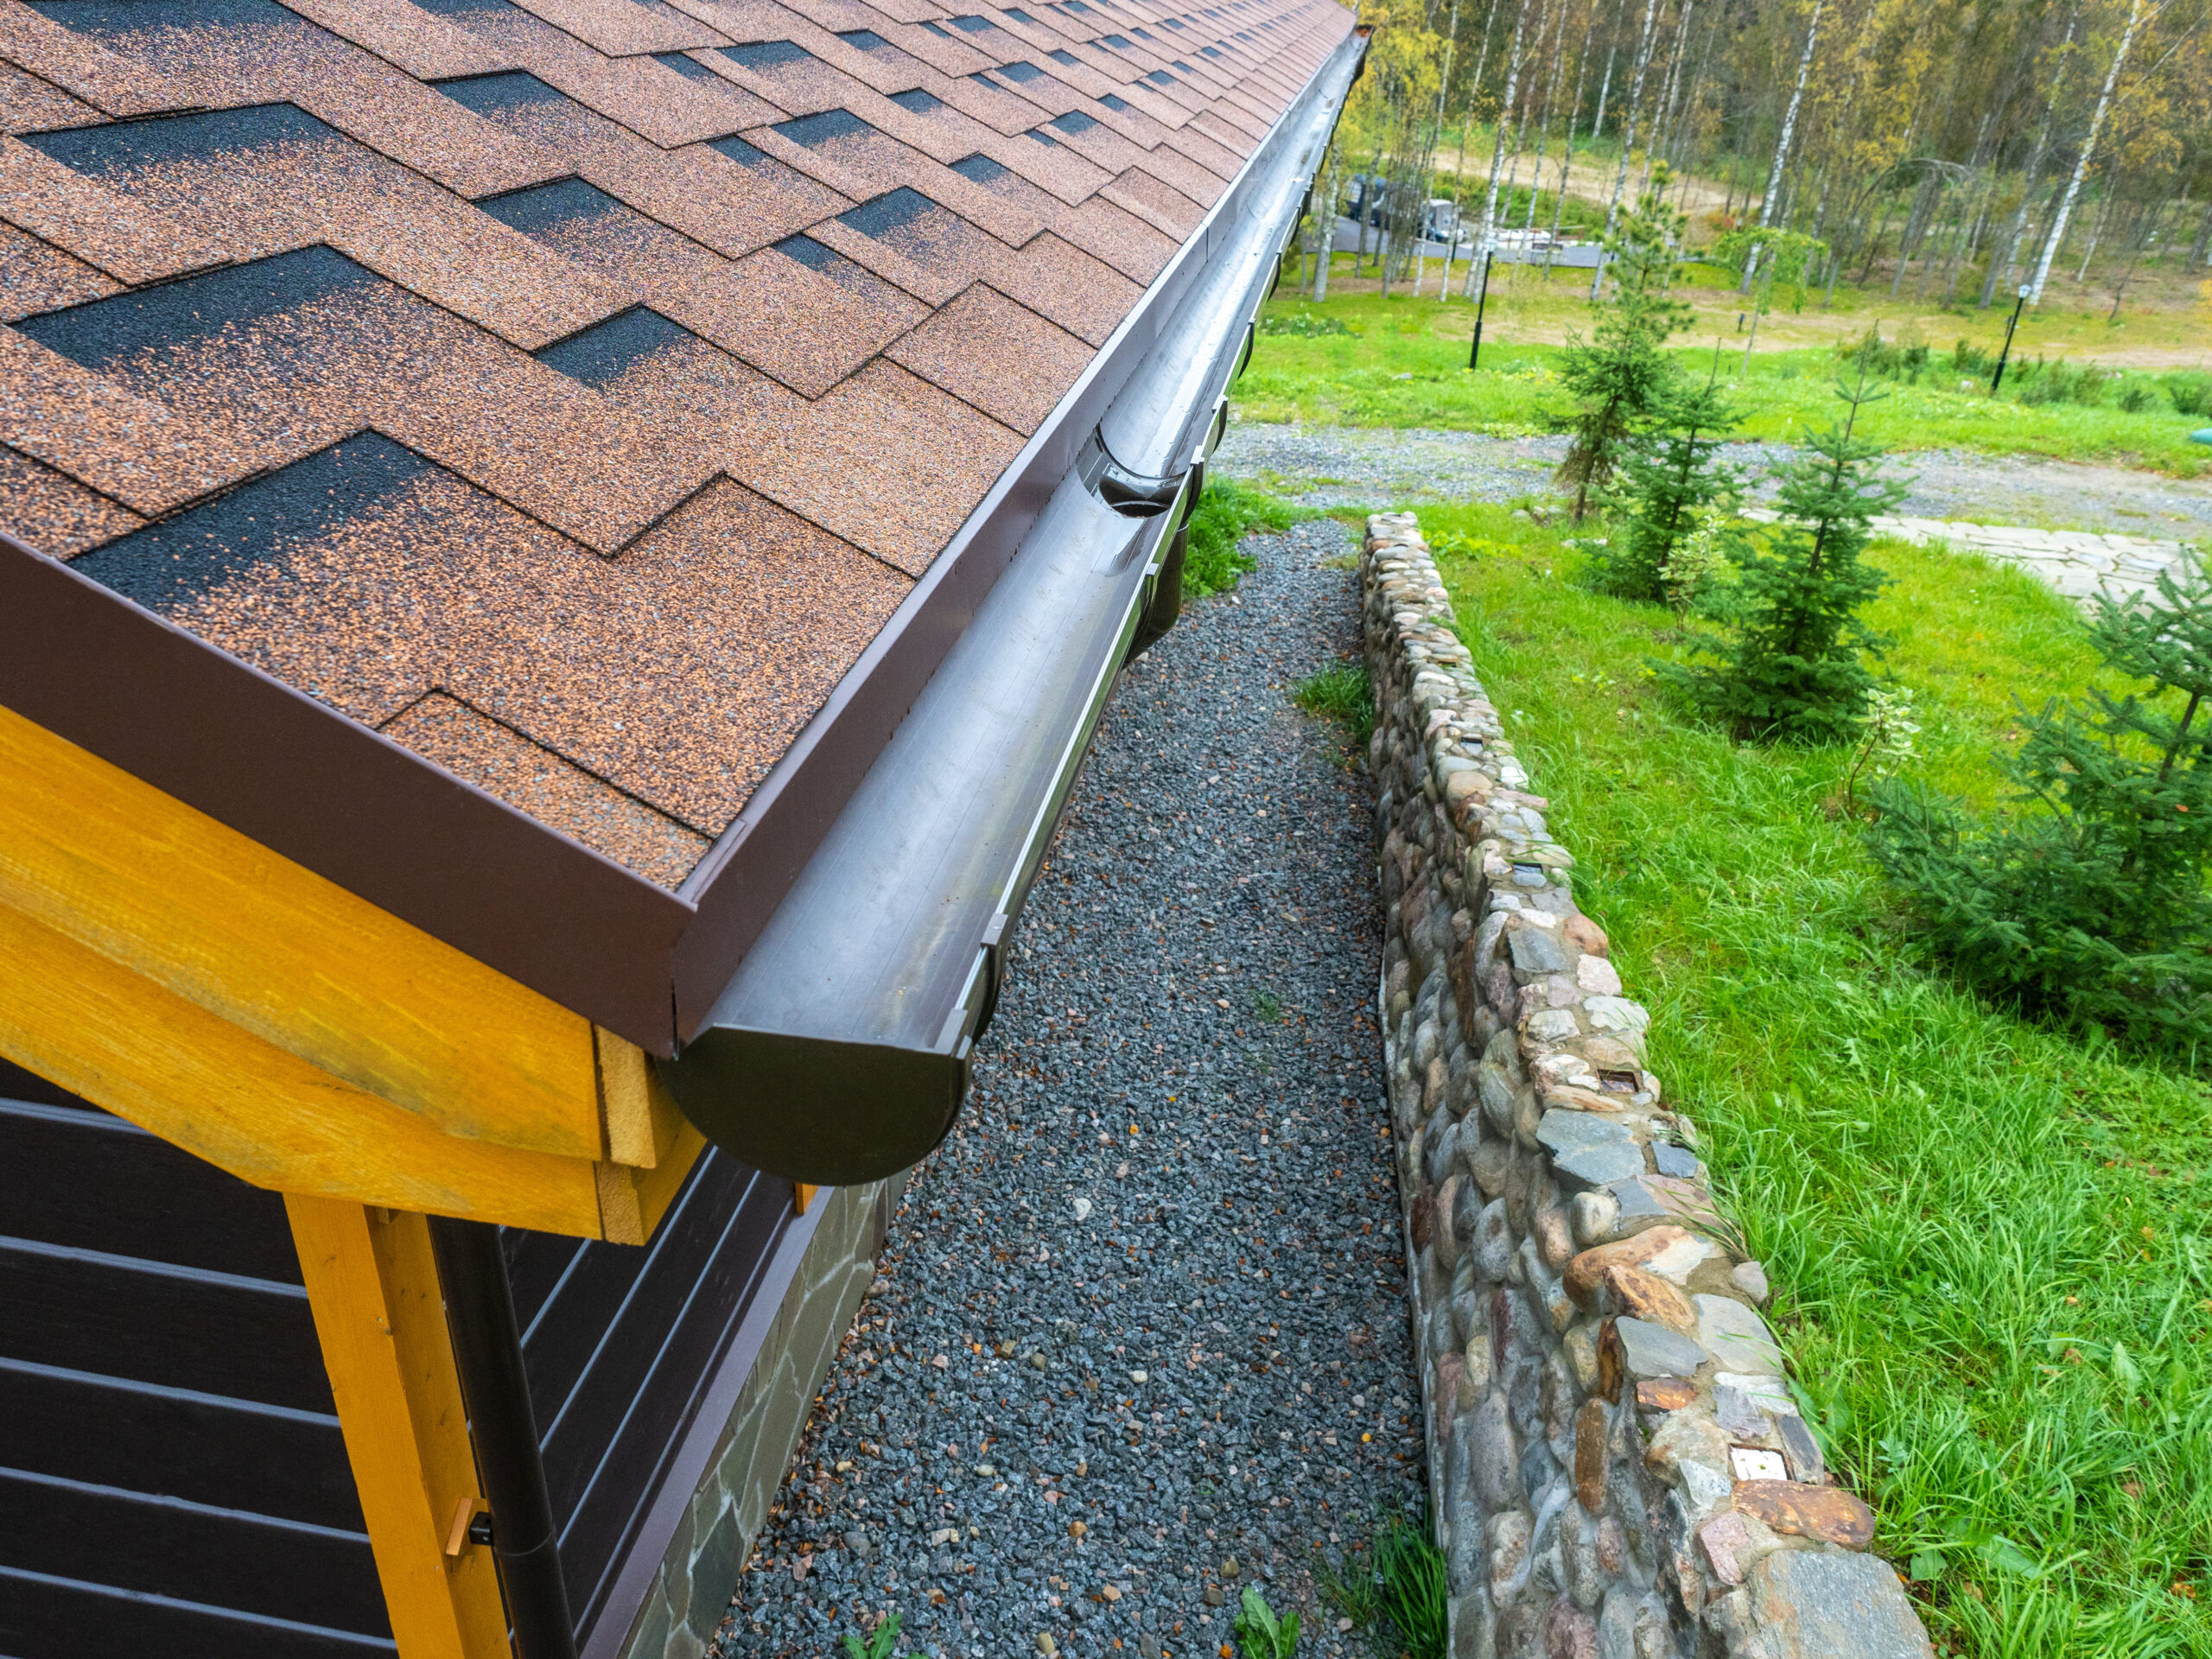 Holder gutter drainage system on the roof. Drain on the roof of the house. Roof drainage. Water drainage from the roof.